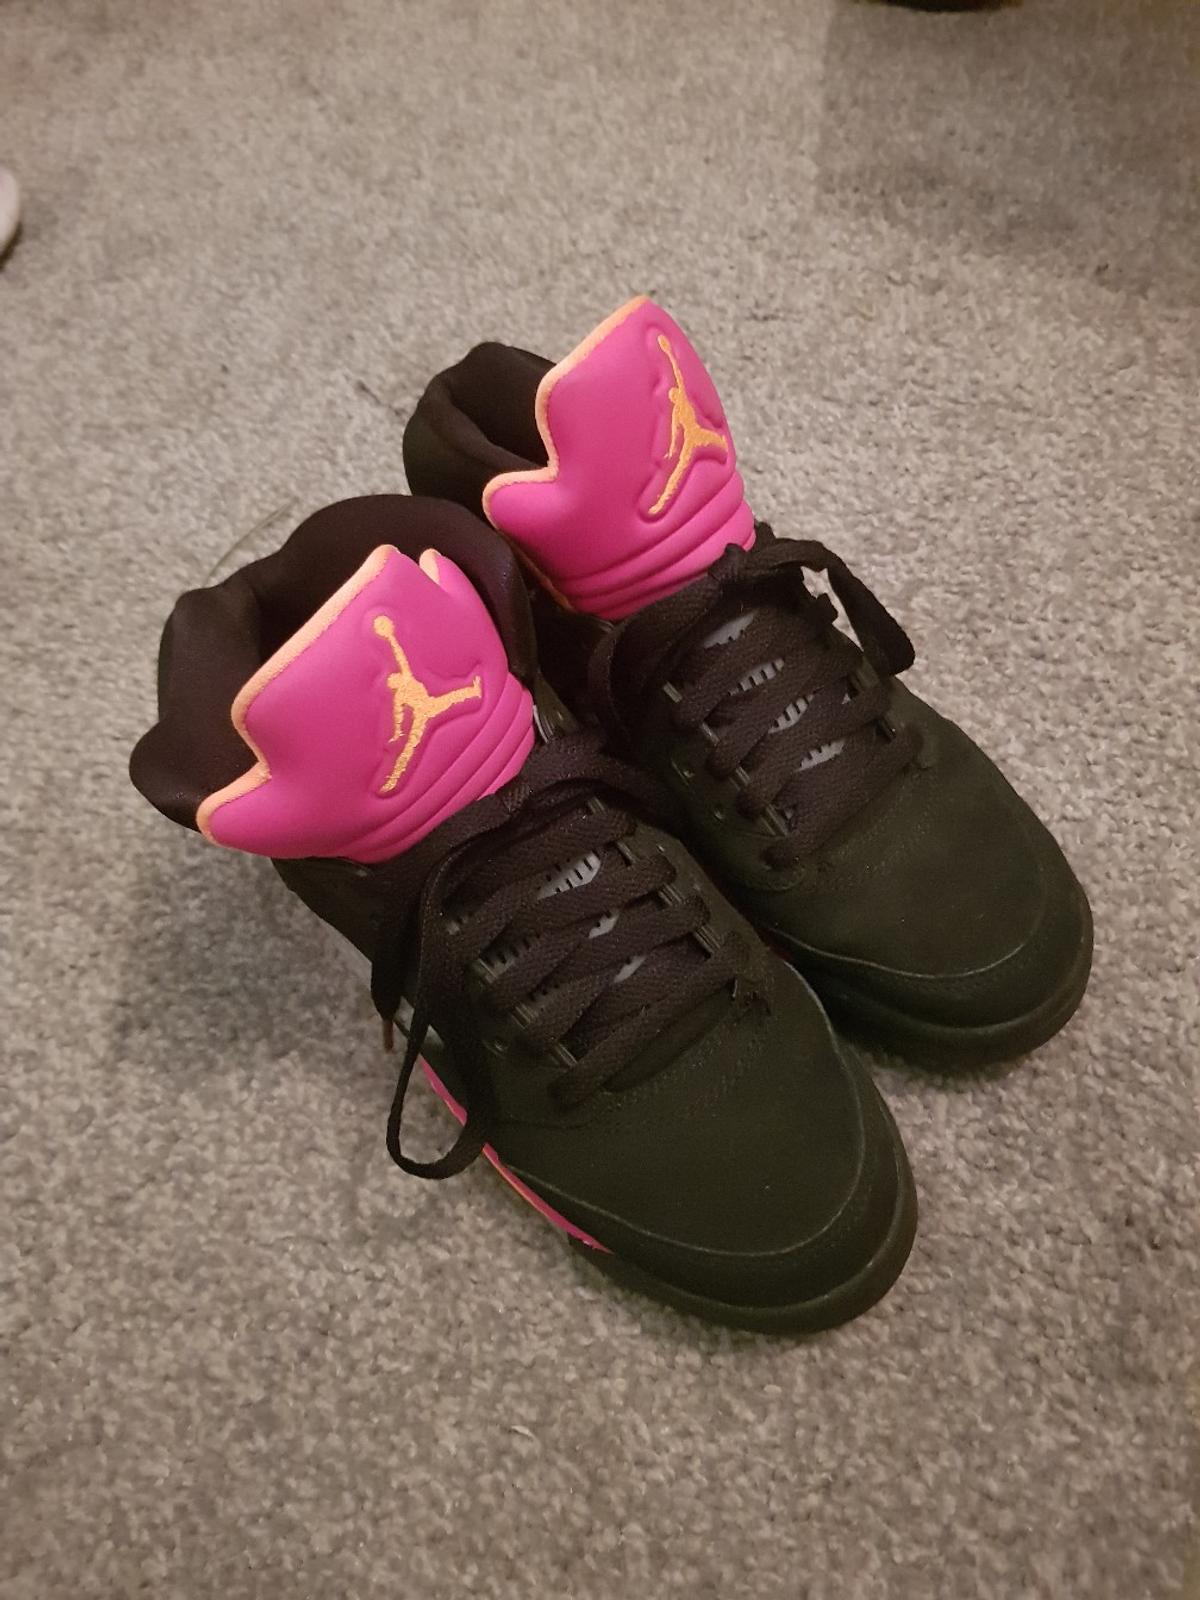 reputable site ca53a 5165d Jordan's Retro 5s in N9 Enfield for £30.00 for sale - Shpock